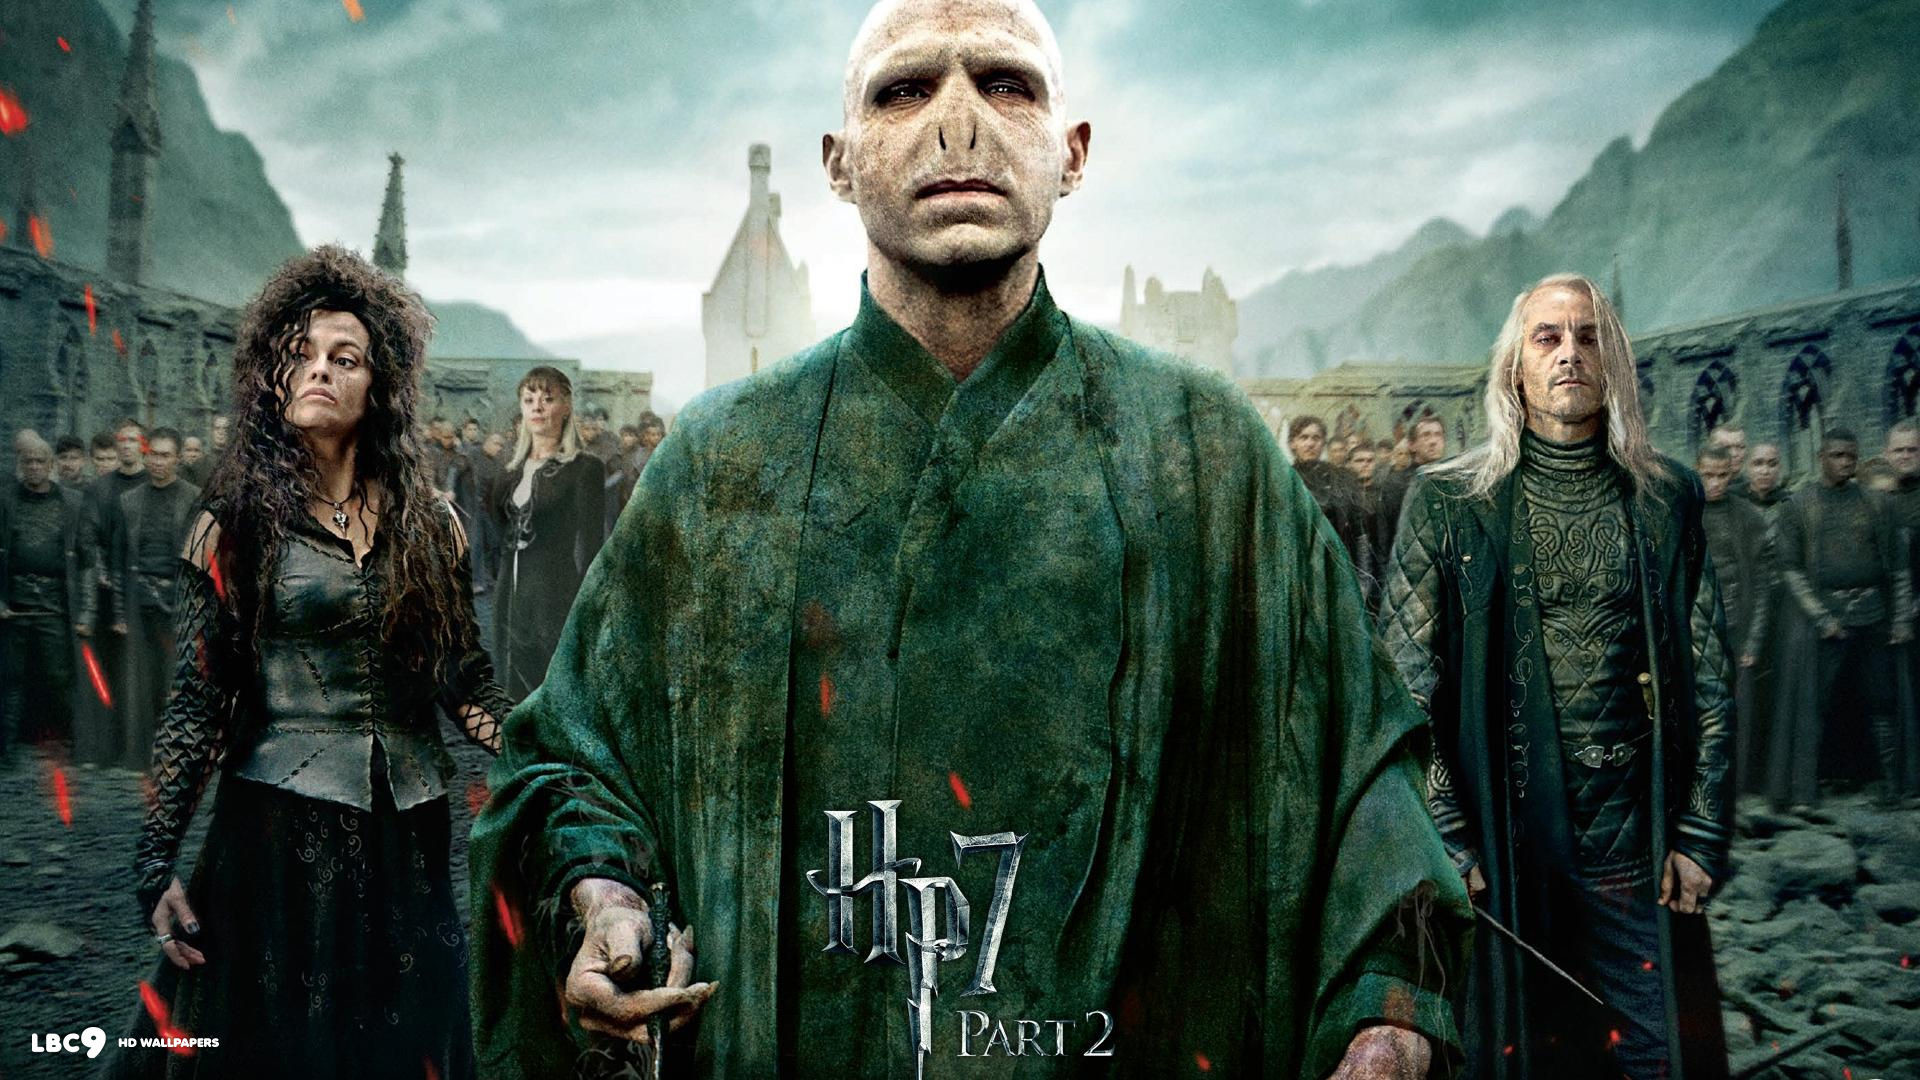 harry potter and the deathly hallows part 2 10 1080p